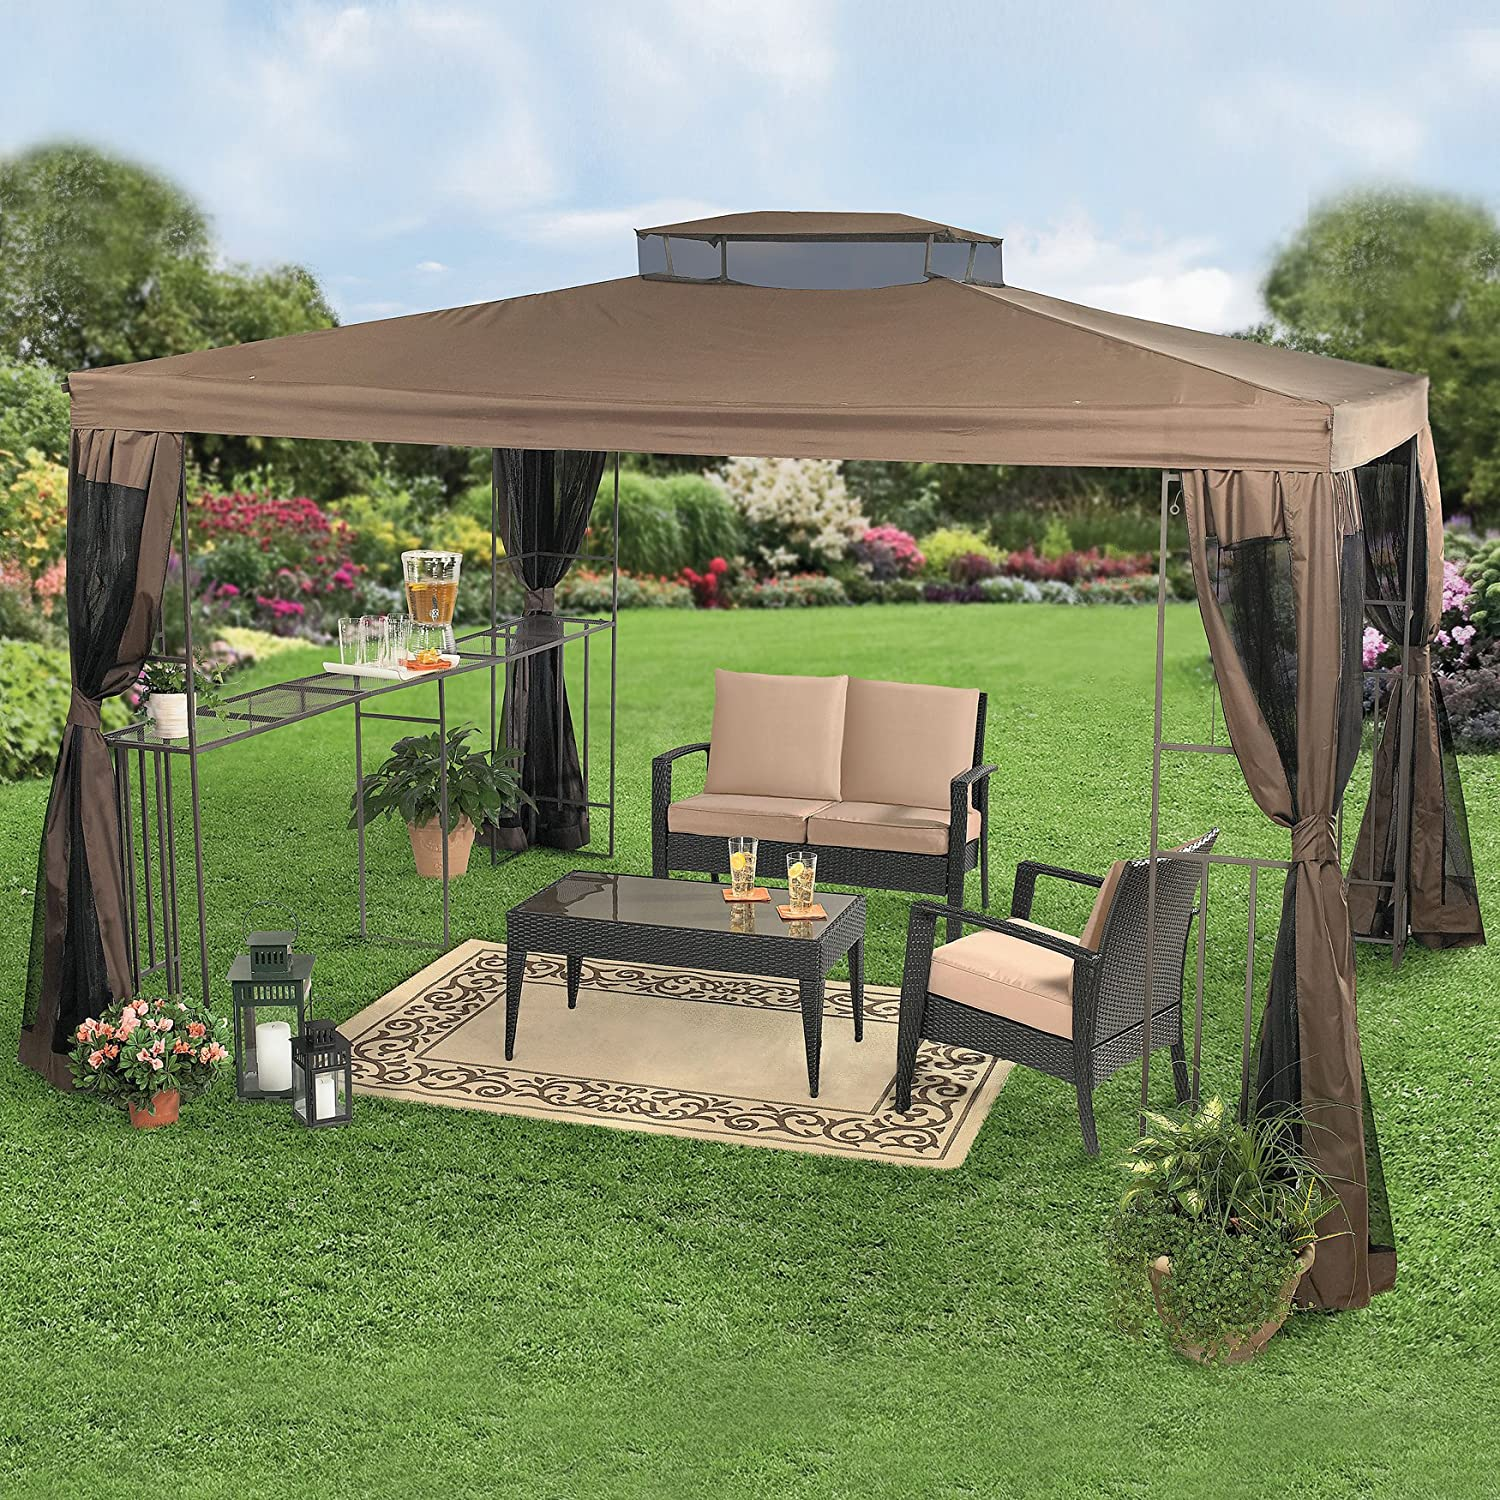 Home and Garden Design Ideas Beautiful Rectangular Gazebo